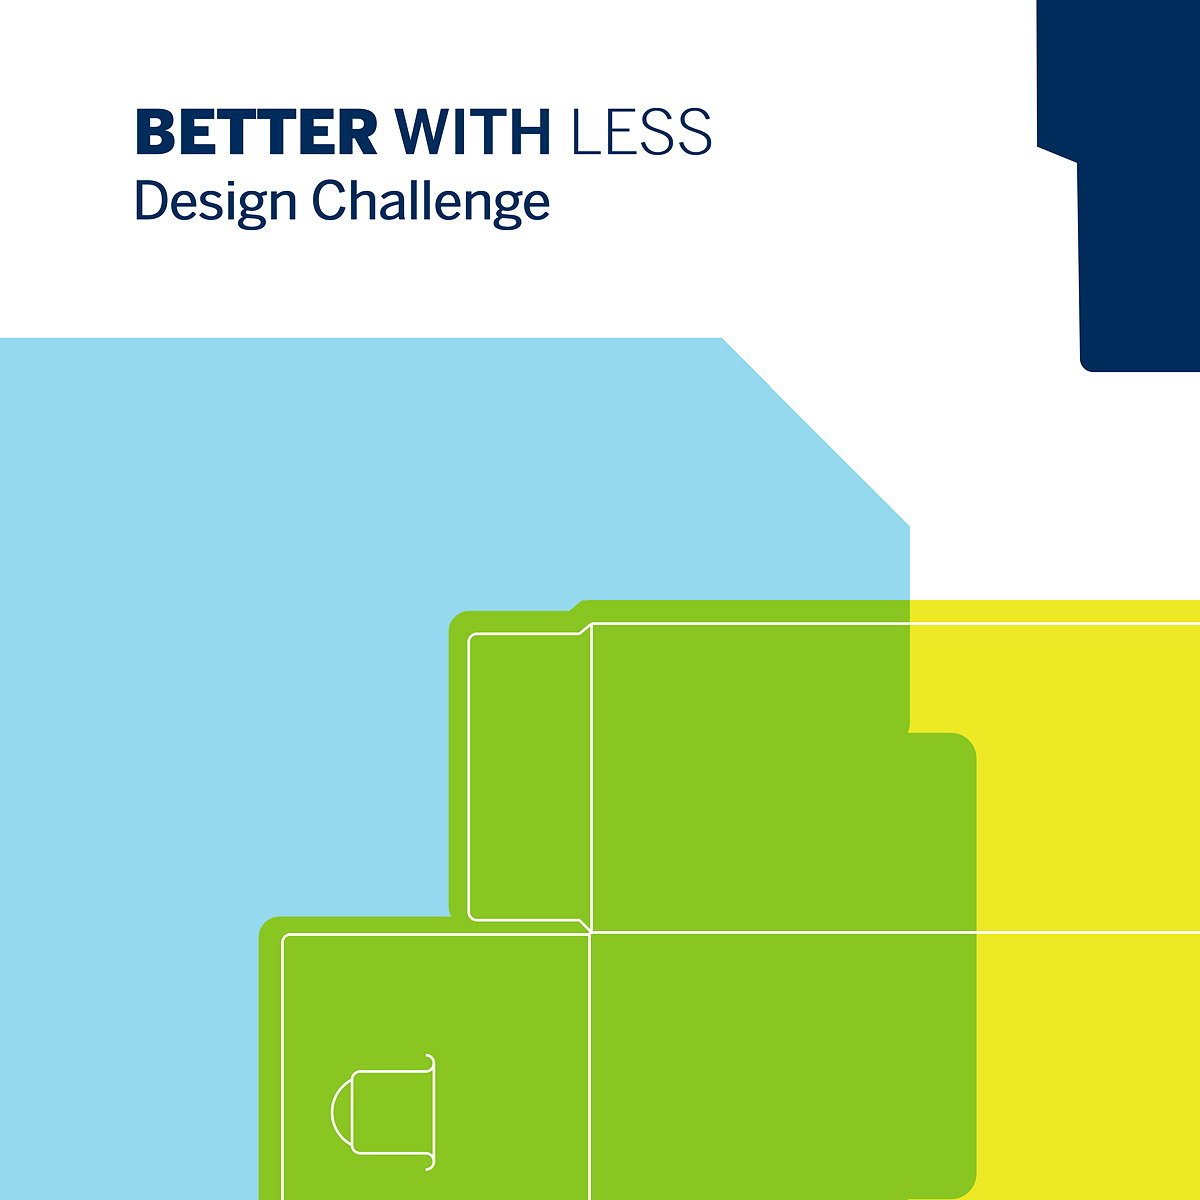 Better with Less Design Challenge